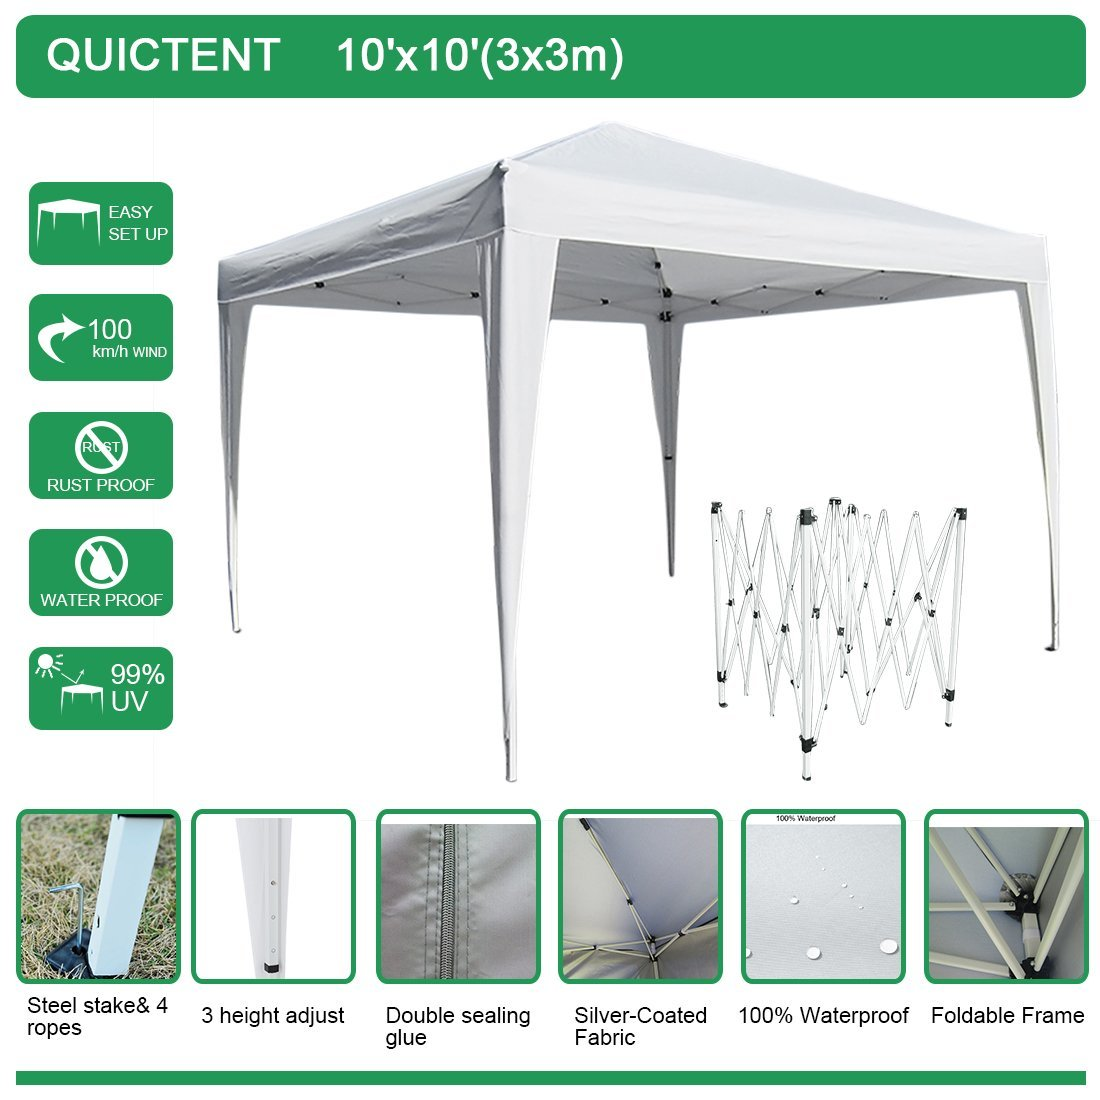 Quictent Easy Pop Up Canopy Instant Canopy Tent 10x10 Feet Heavy duty Height adjustable waterproof White by